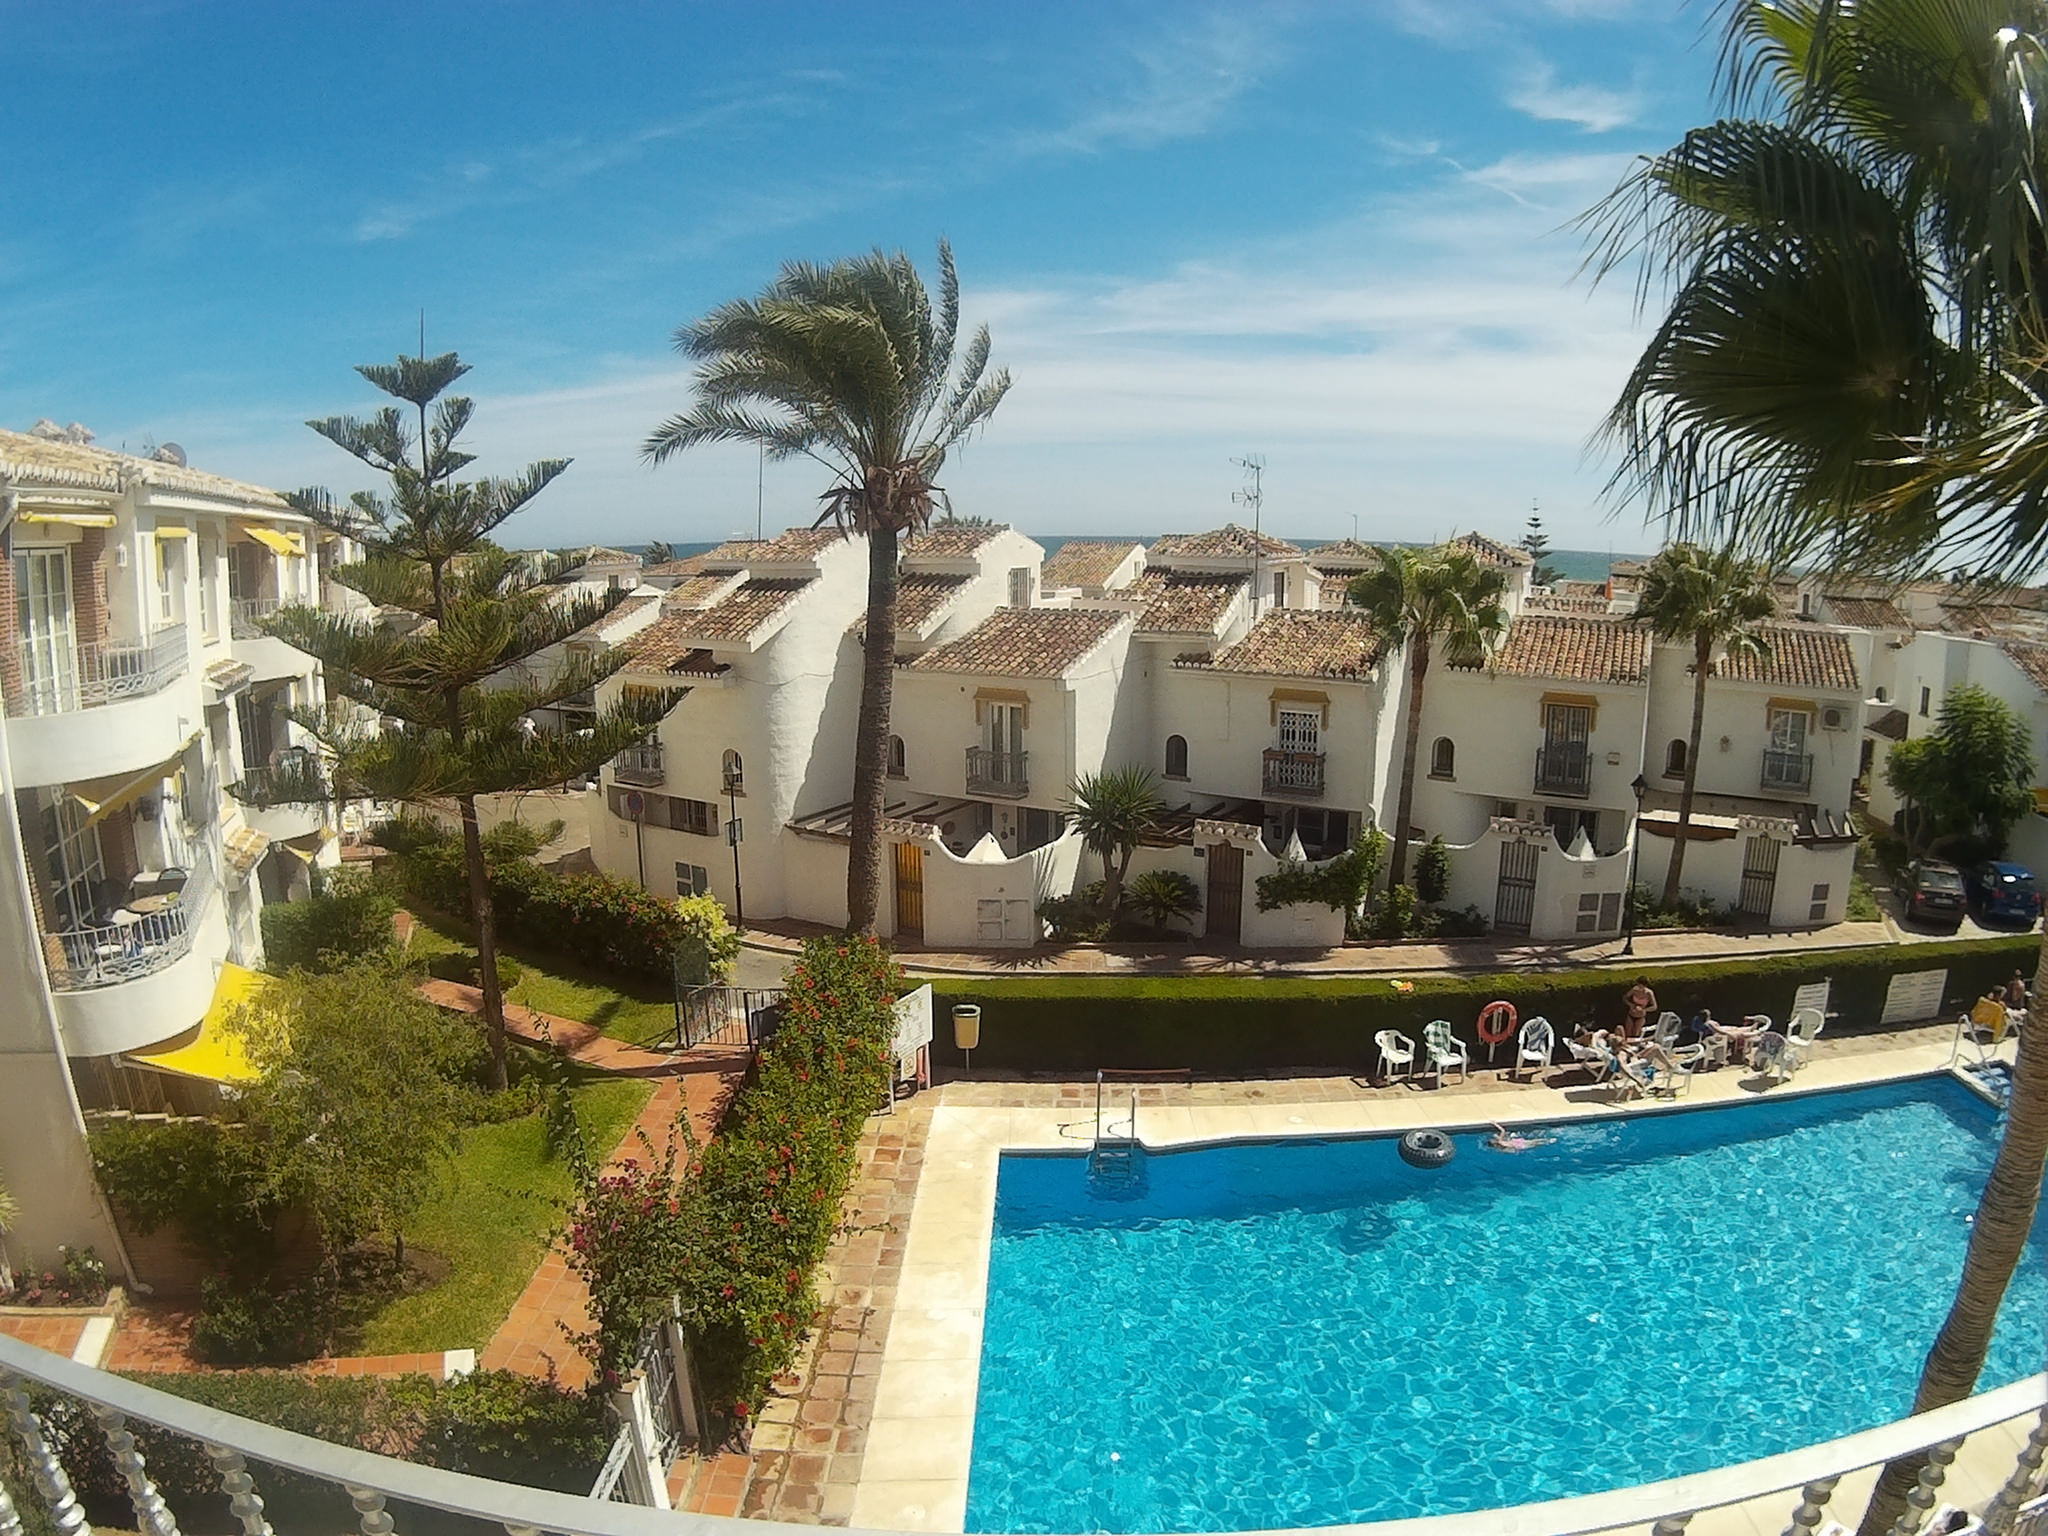 MP 3-5 Mijas Playa Club, Top Floor, 3 Bedroomed Apartment